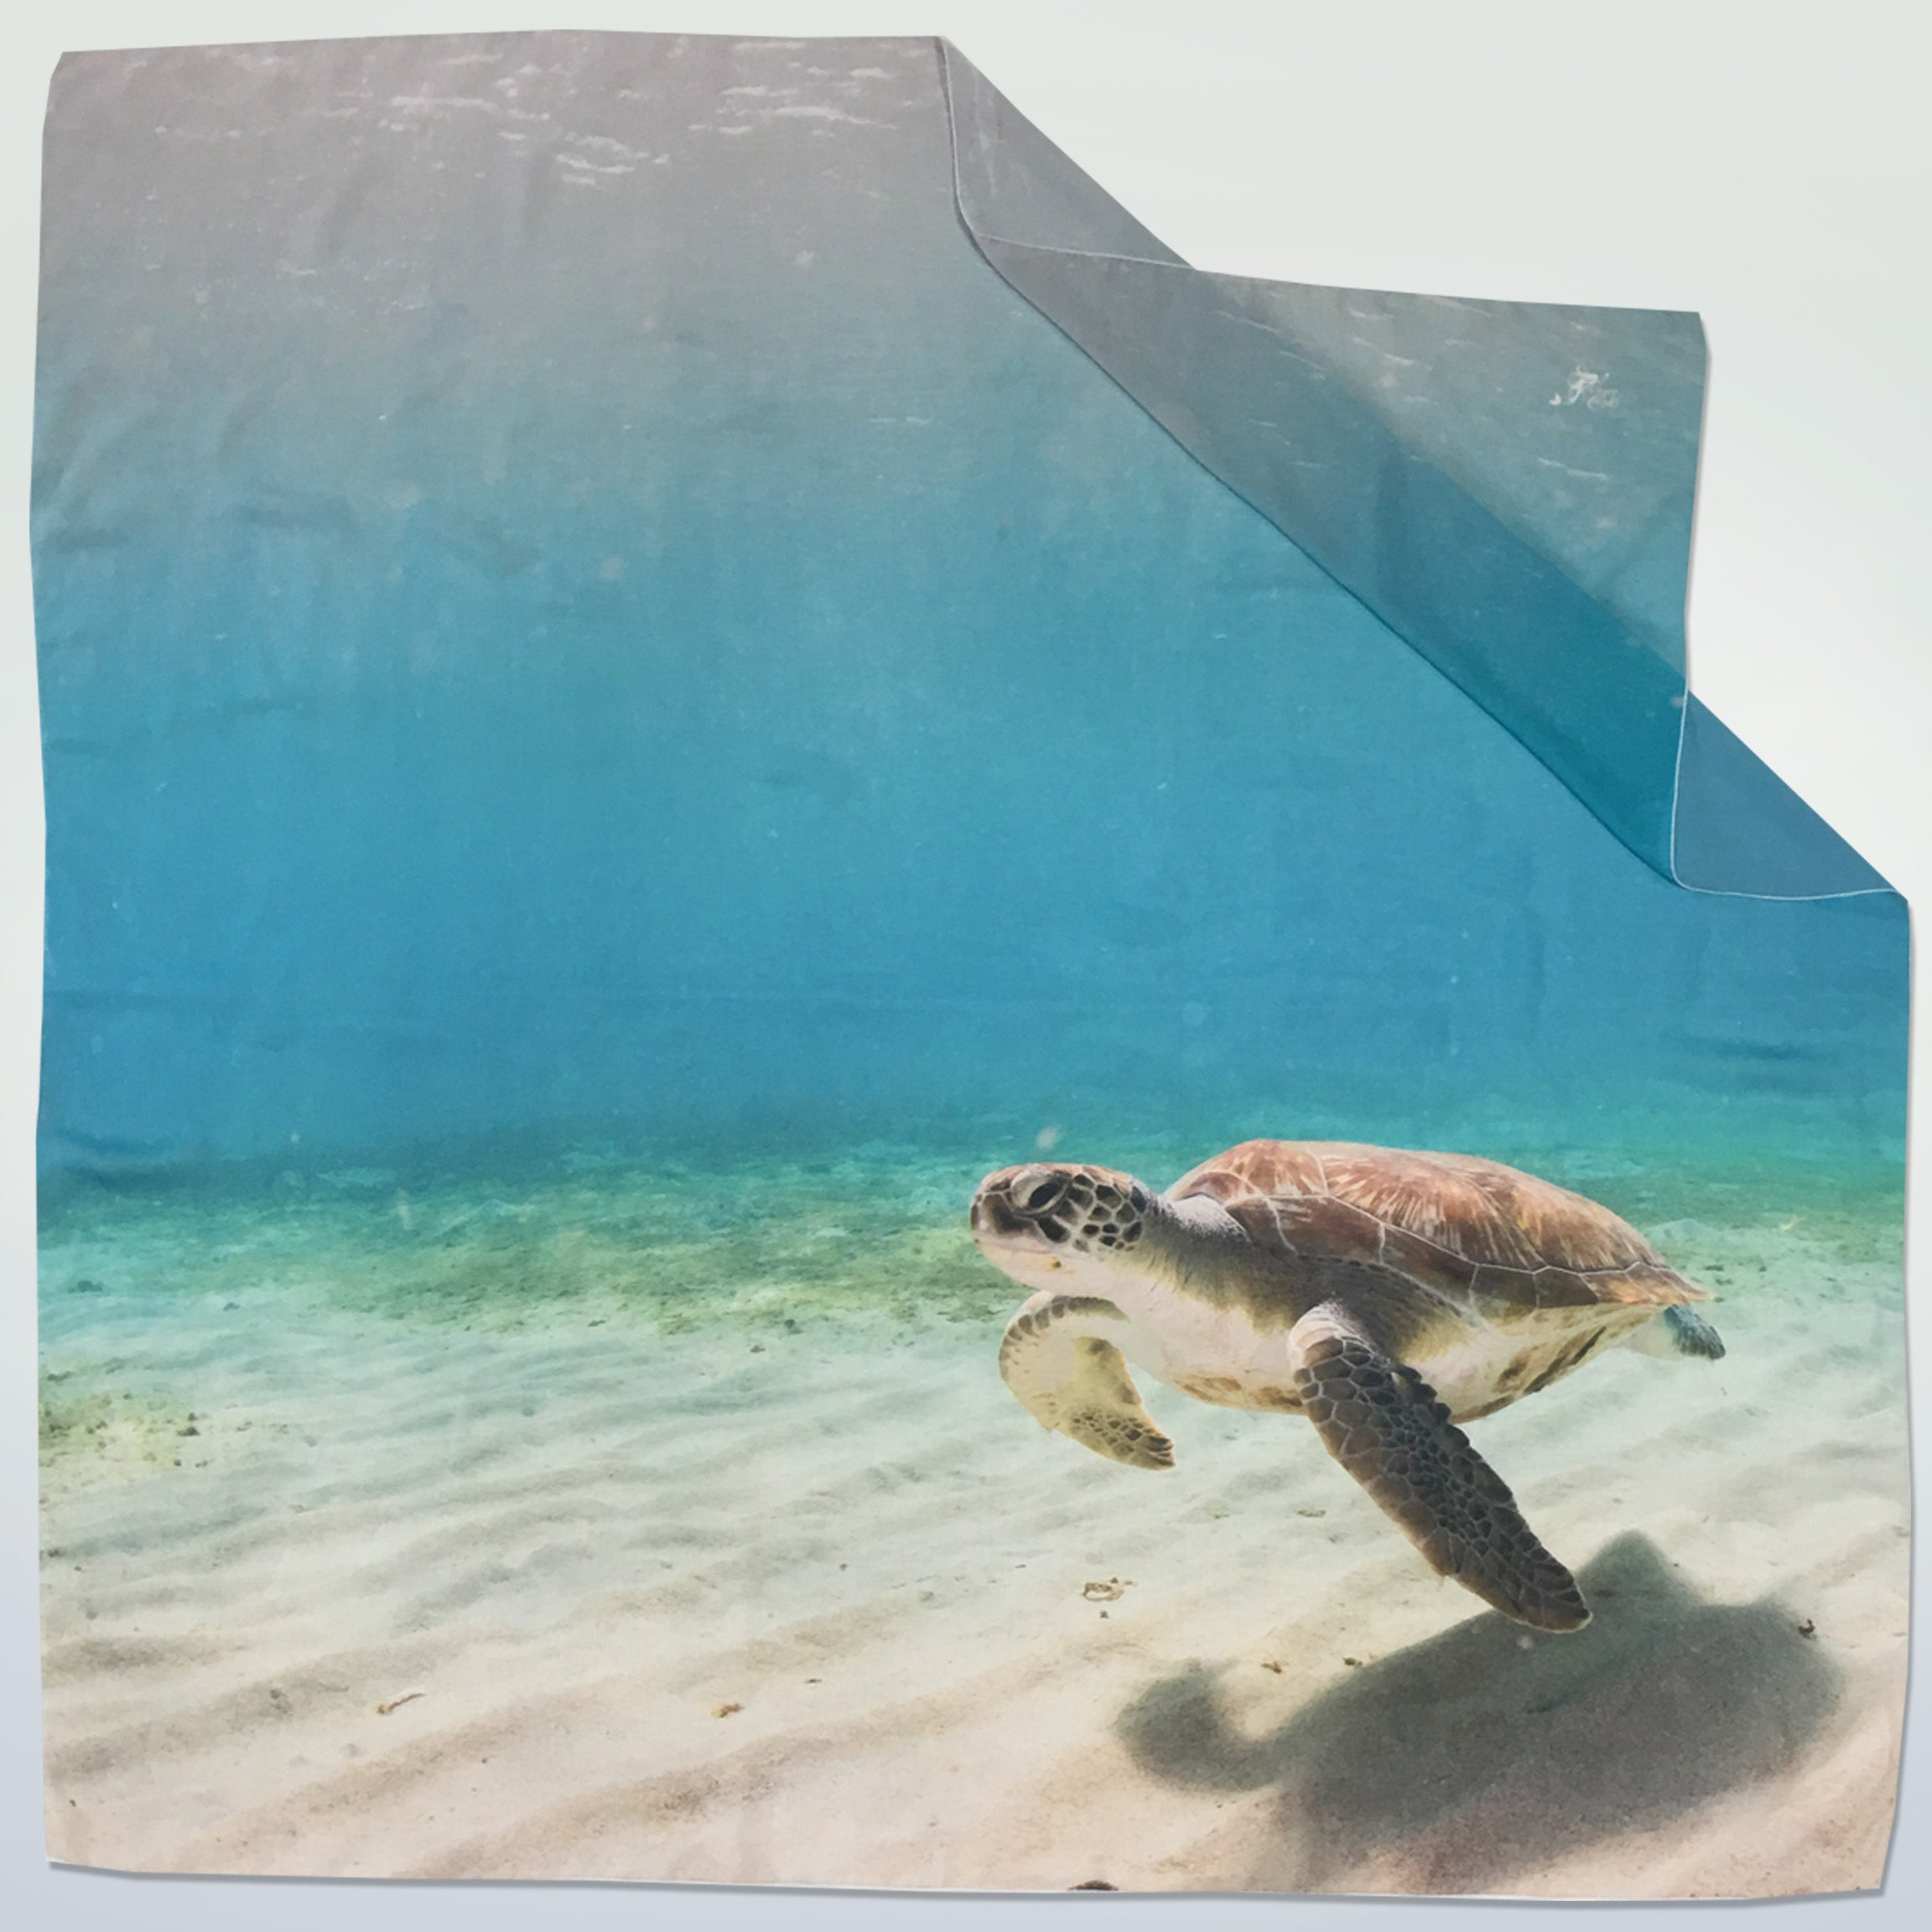 Sea Turtle Chiffon Sarong - Cape Cali